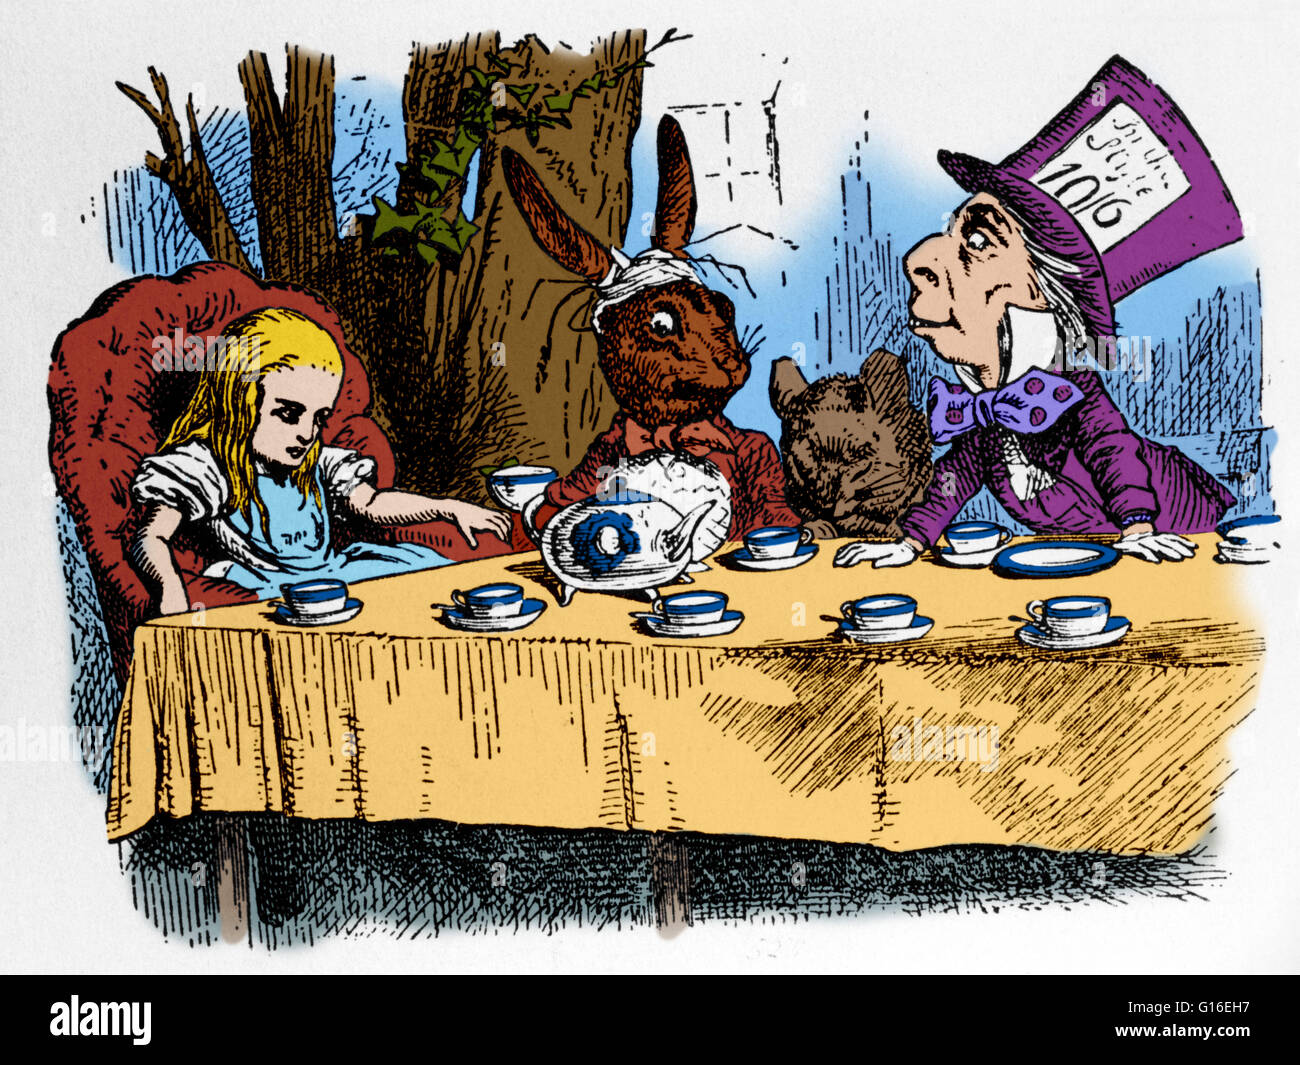 The Mad Hatters Tea Party A Scene From Lewis Carrolls Alice In Wonderland Illustrated